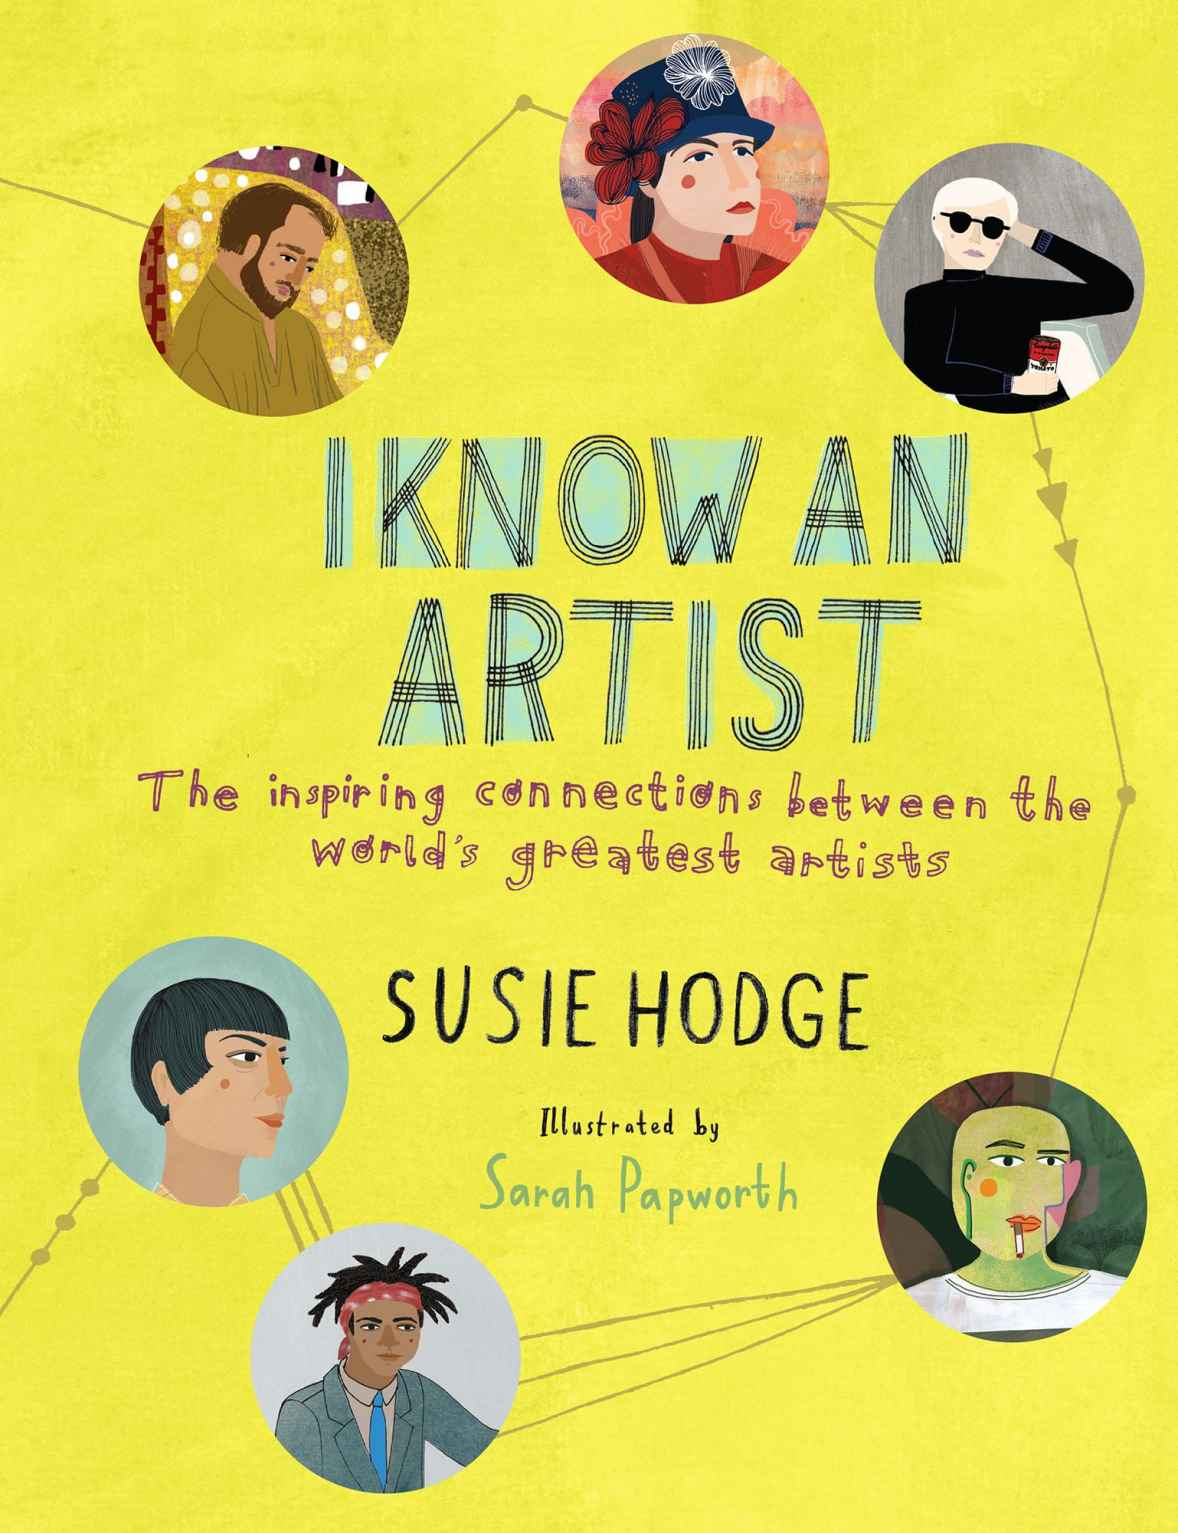 Book: I know an artist by Susie Hodge, illustrated by Sarah Papworth, www.Fenne.be